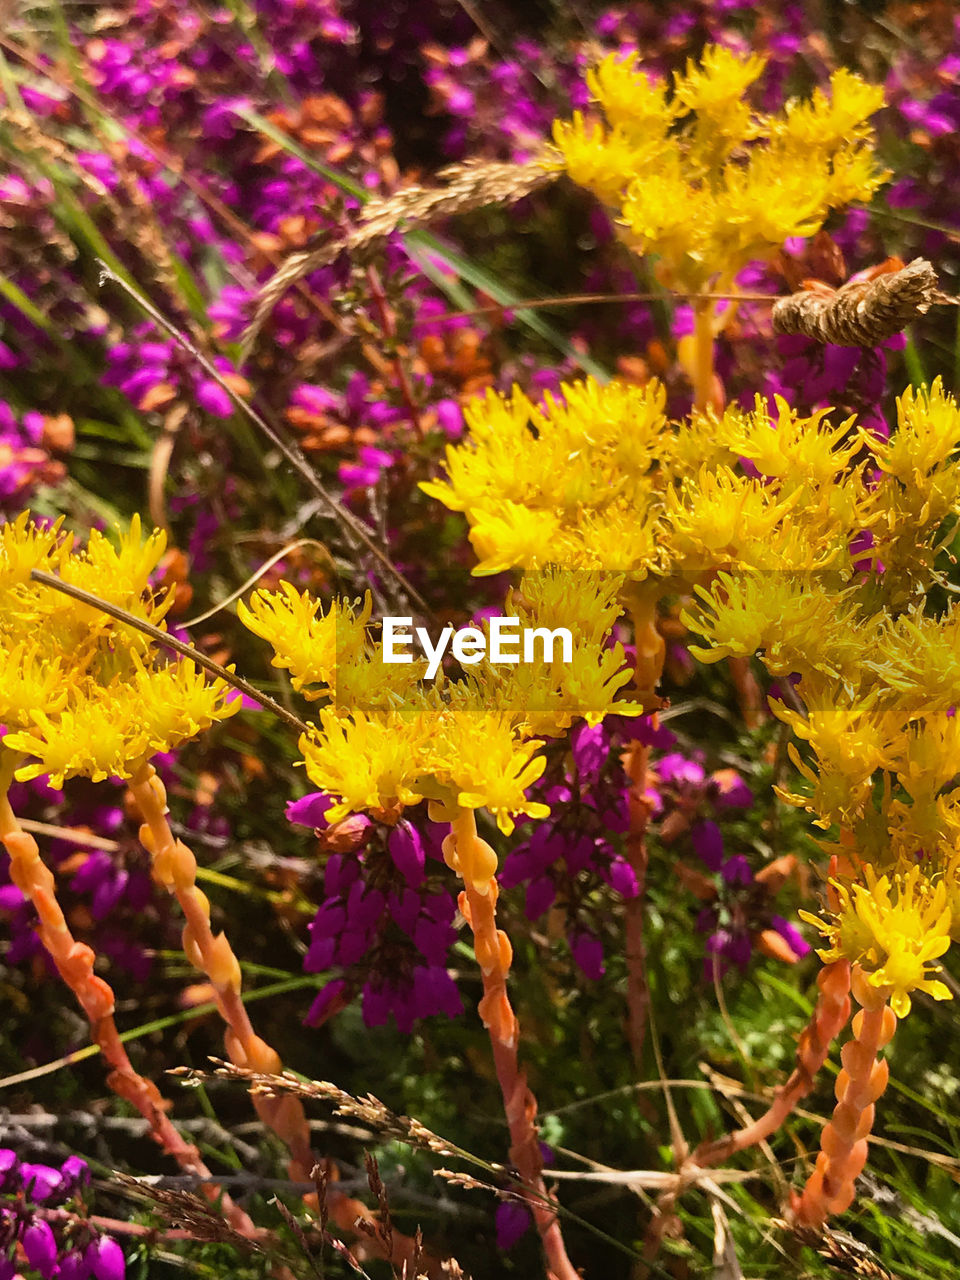 flower, flowering plant, plant, freshness, fragility, vulnerability, beauty in nature, yellow, growth, close-up, nature, petal, day, no people, flower head, inflorescence, land, focus on foreground, outdoors, botany, purple, pollination